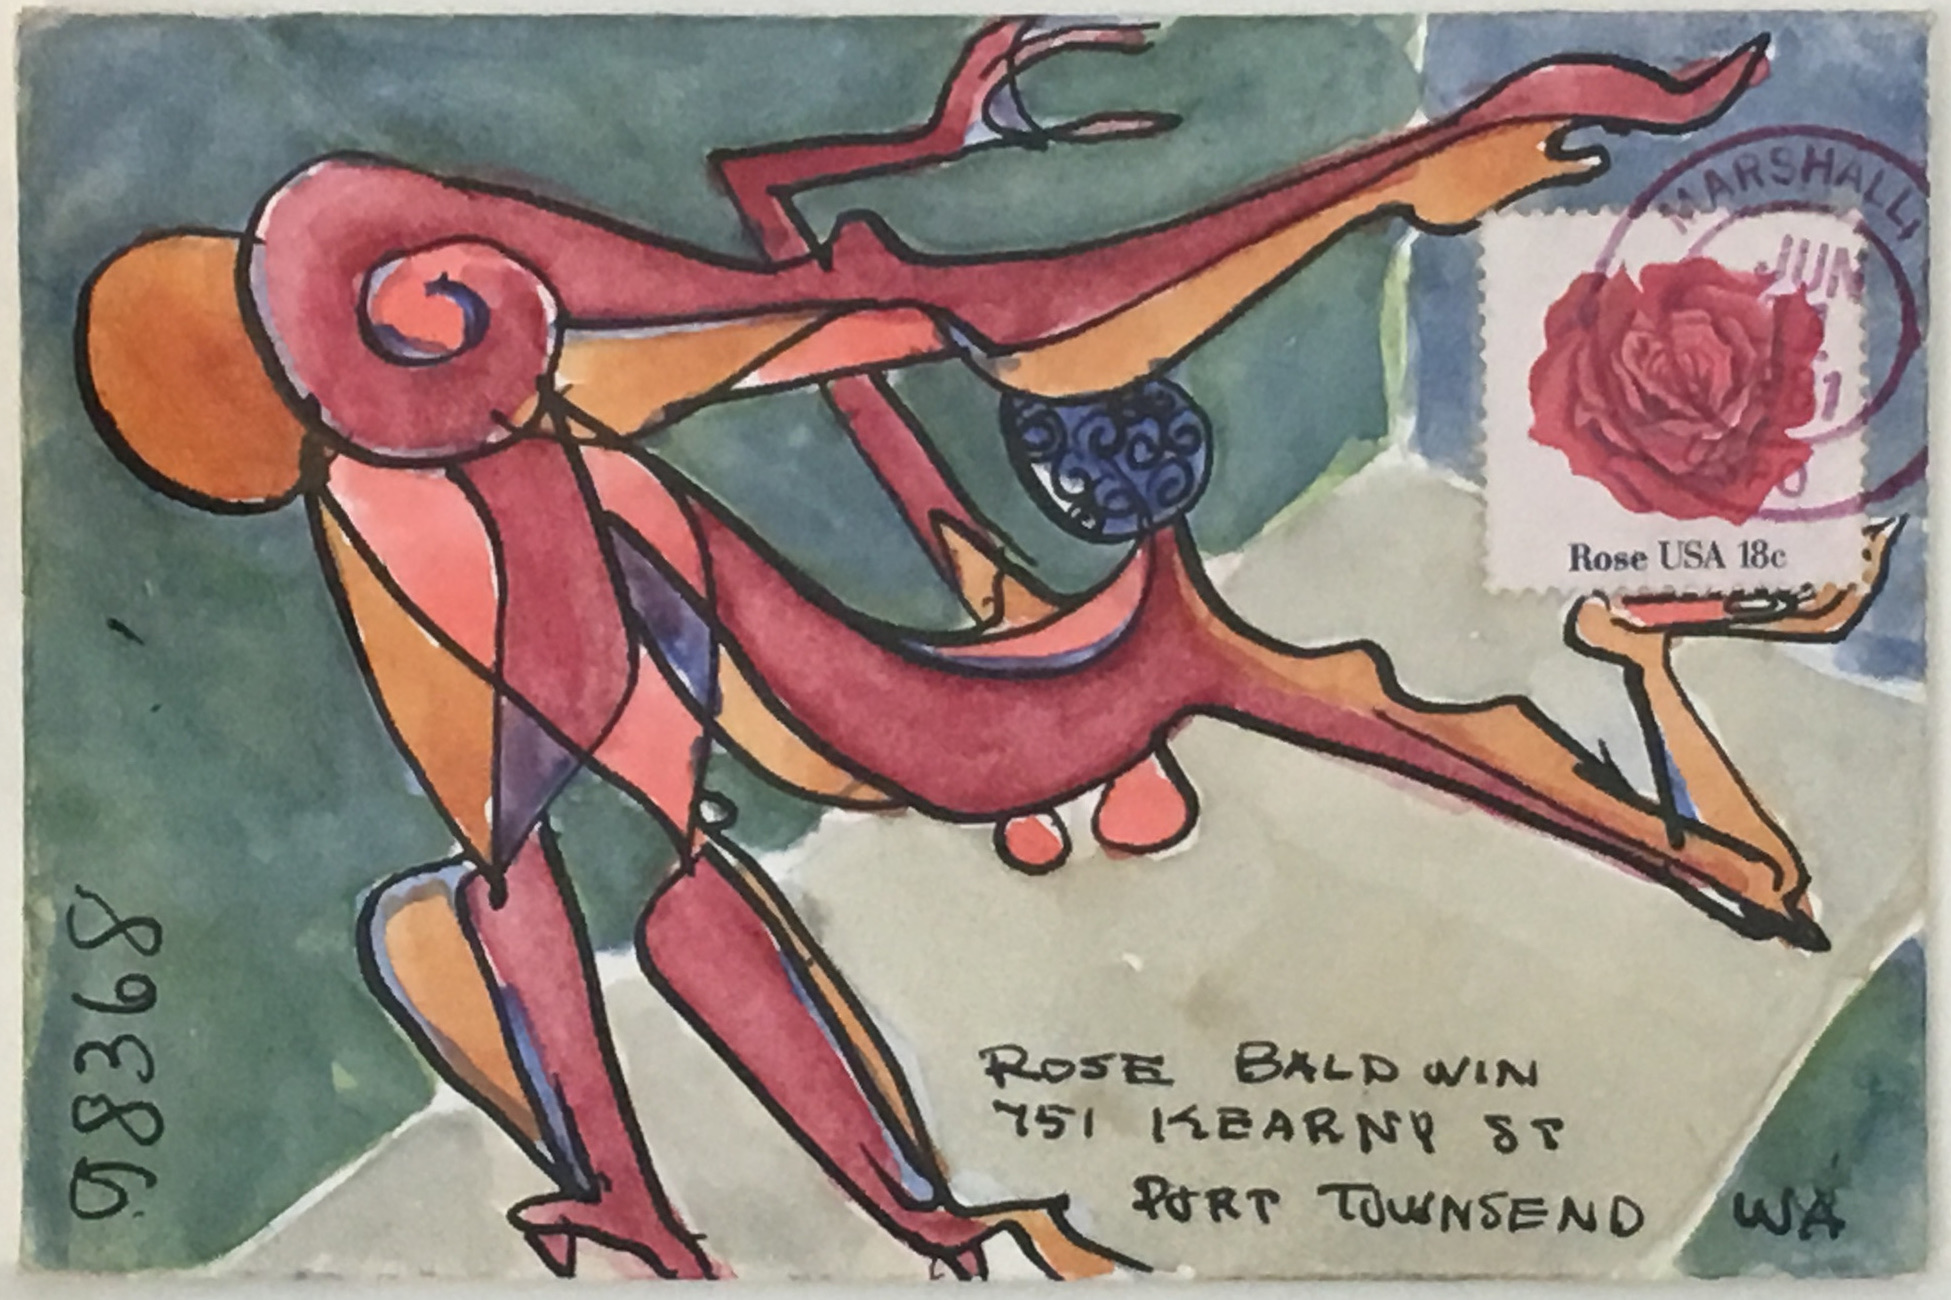 Clayton Lewis    Interlude,  1981 Mixed media on paper envelope 4.25 x 6.5 inches      For More Information